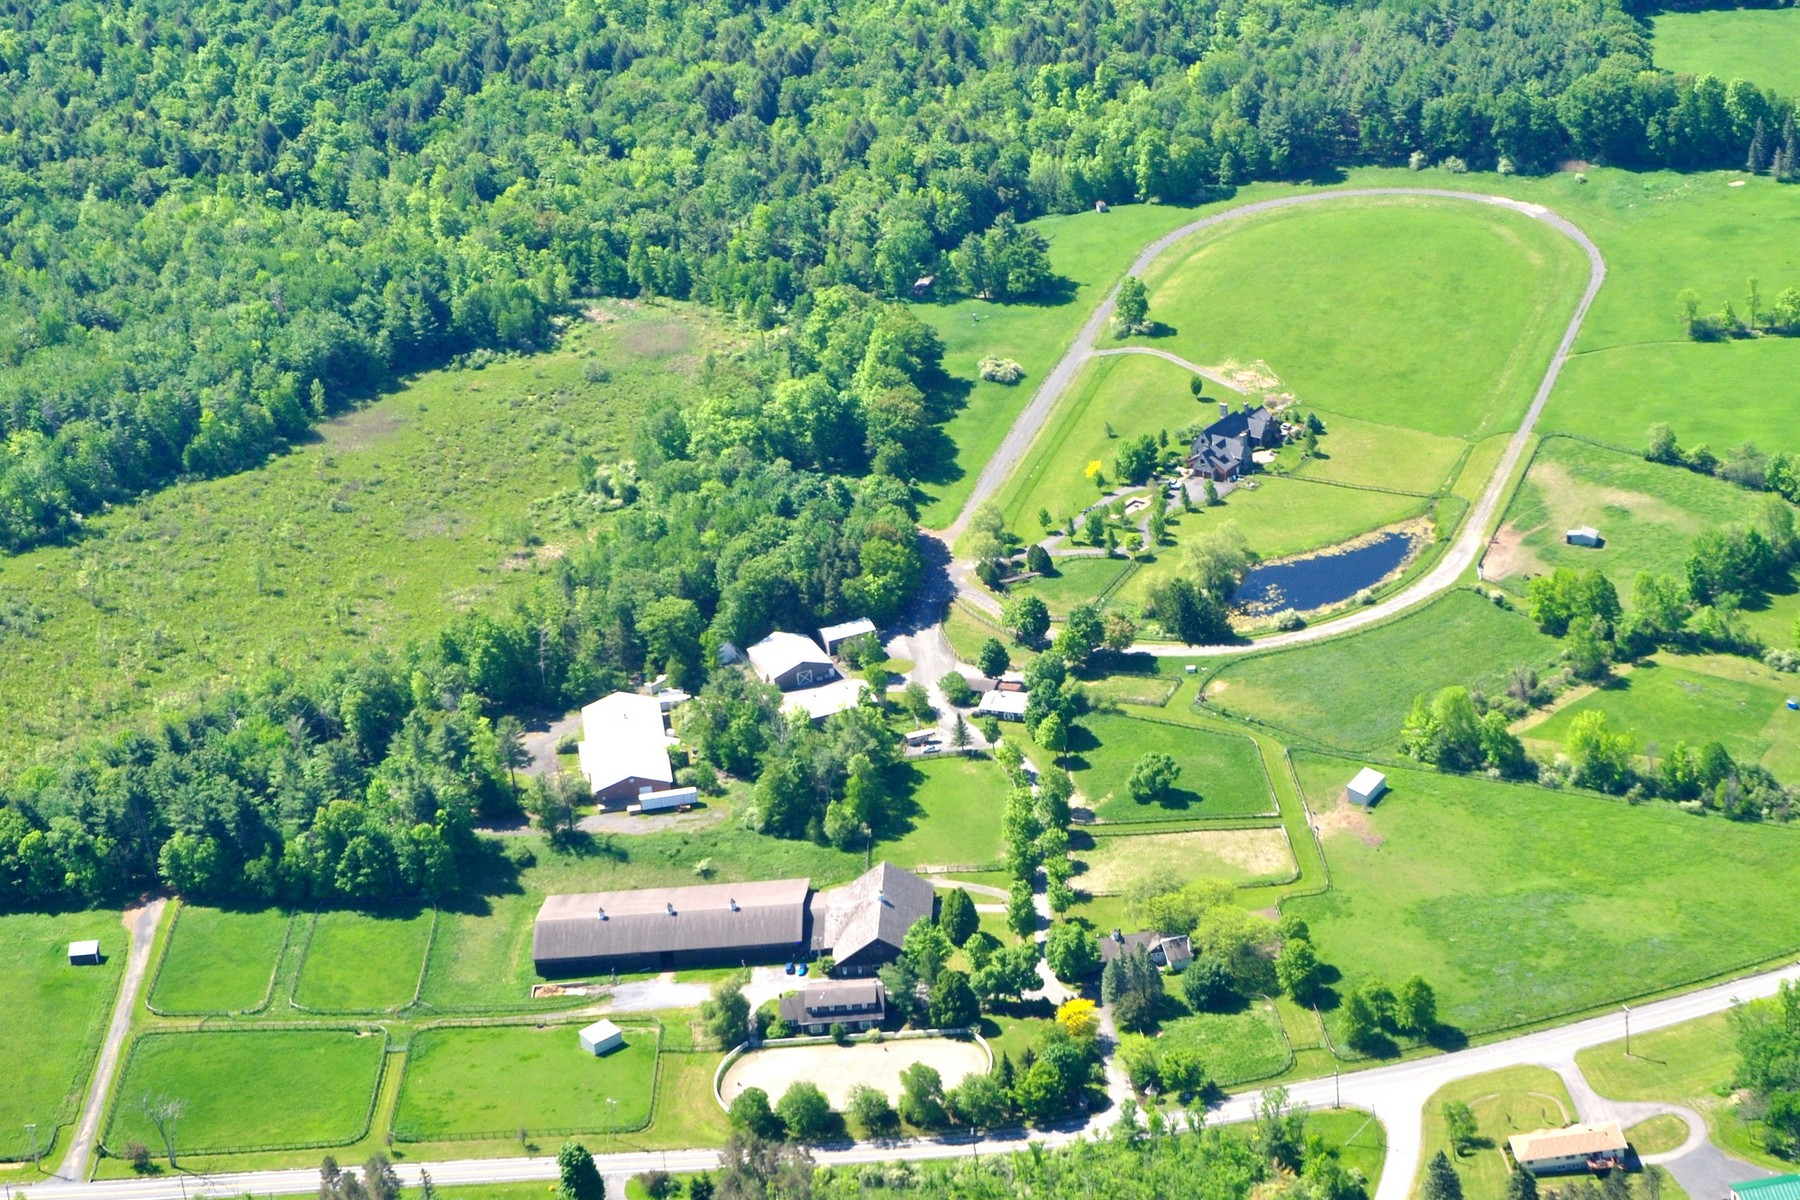 Maison unifamiliale pour l Vente à Graywood - 2 Hours North of NYC 667 Route 403 Westerlo, New York 12083 États-Unis